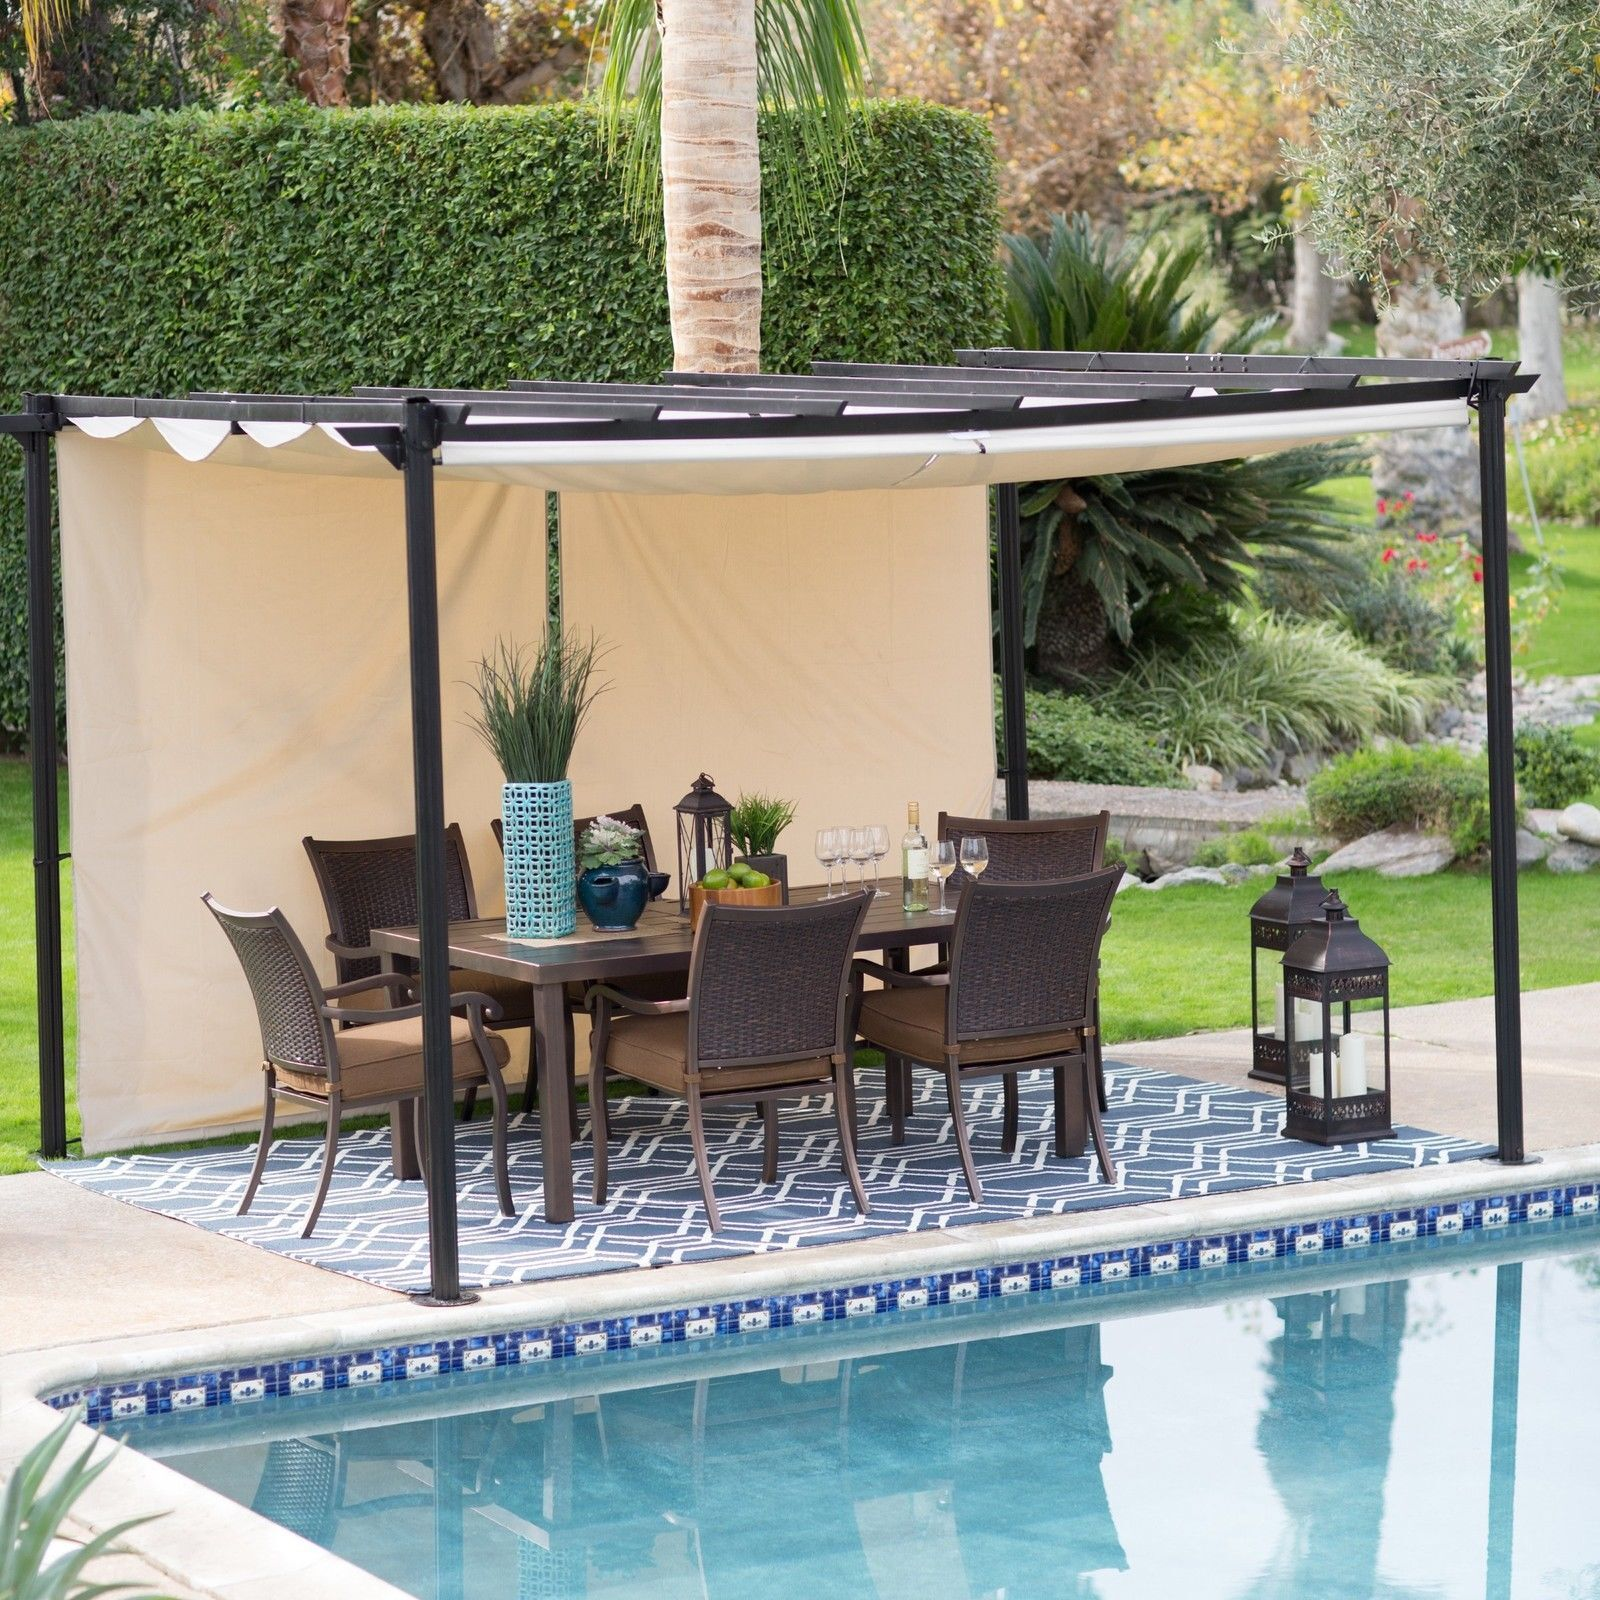 gazebo canopy tent outdoor cover patio shelter yard deck shade garden pool steel ebay. Black Bedroom Furniture Sets. Home Design Ideas